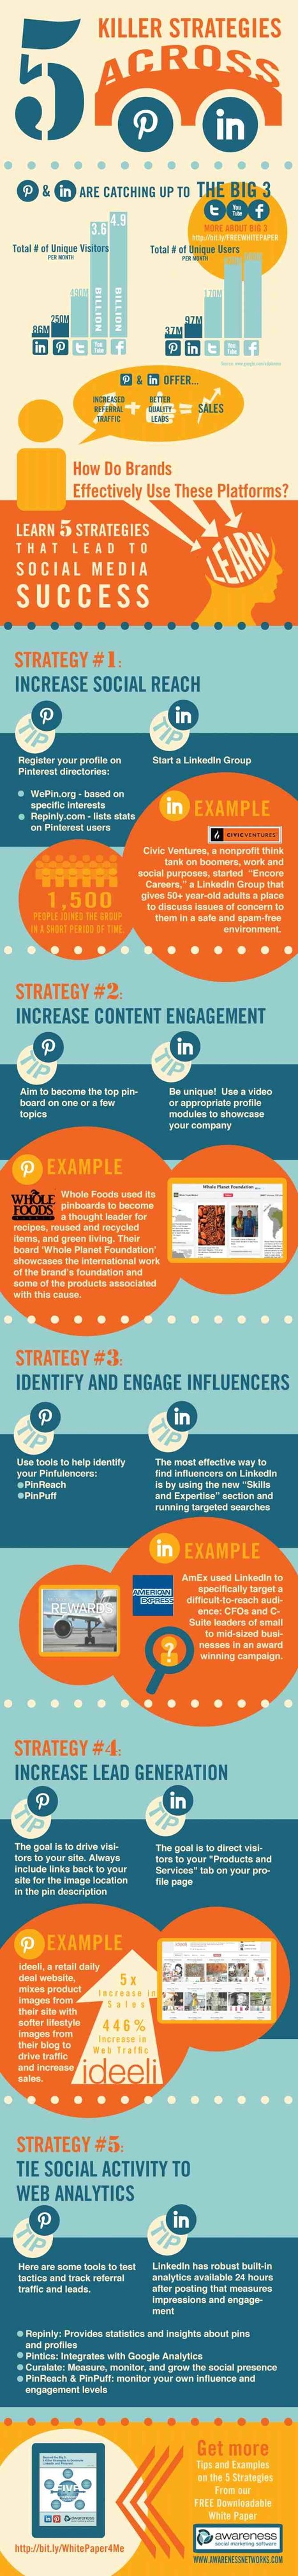 Beyond the Big 3: Strategies for Brands to Dominate Pinterest and LinkedIn [Infographic] | Social Media Today | INFOGRAPHICS | Scoop.it